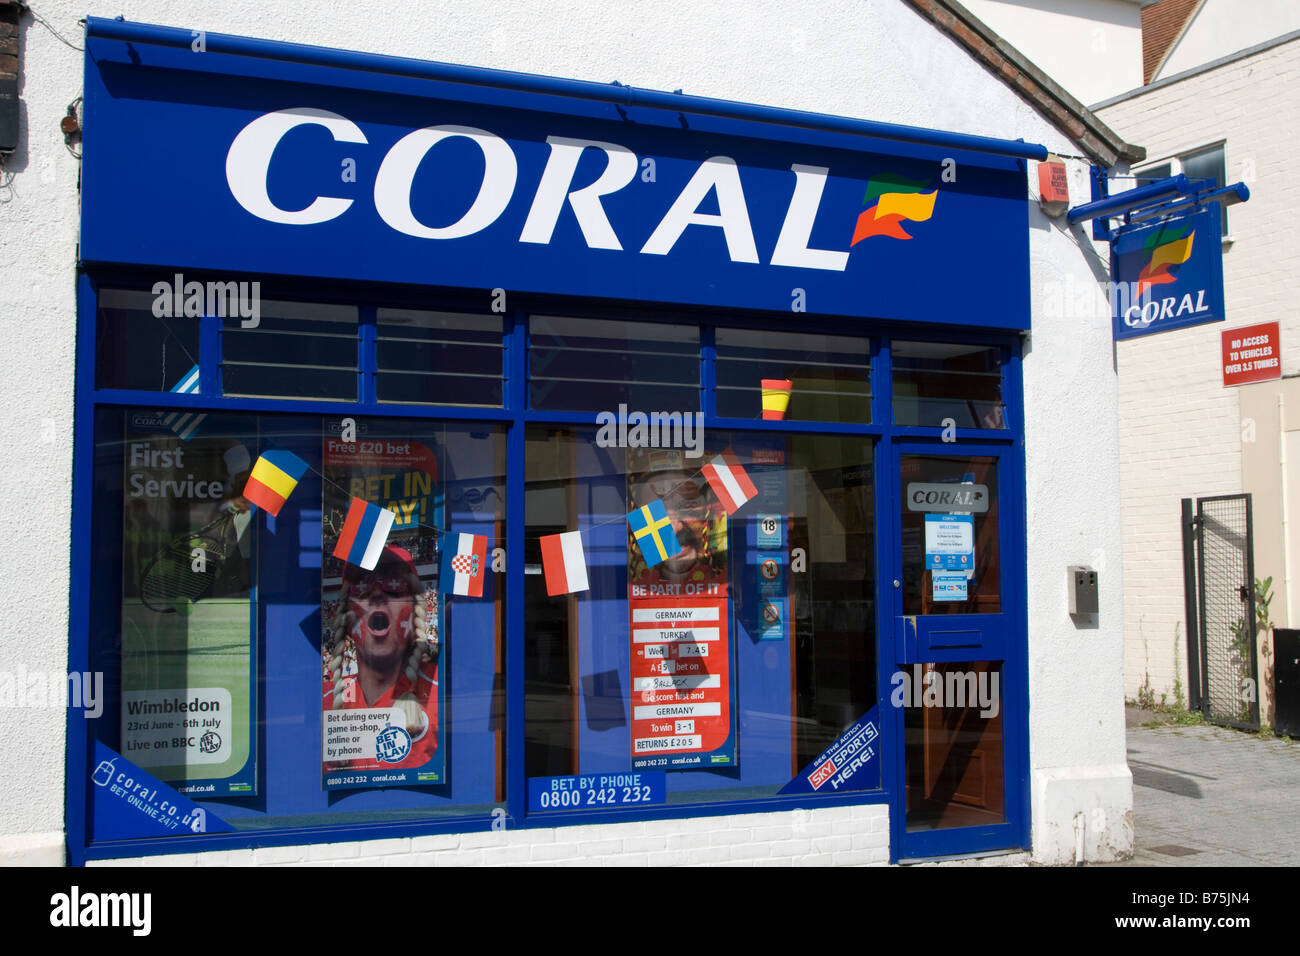 coral online betting